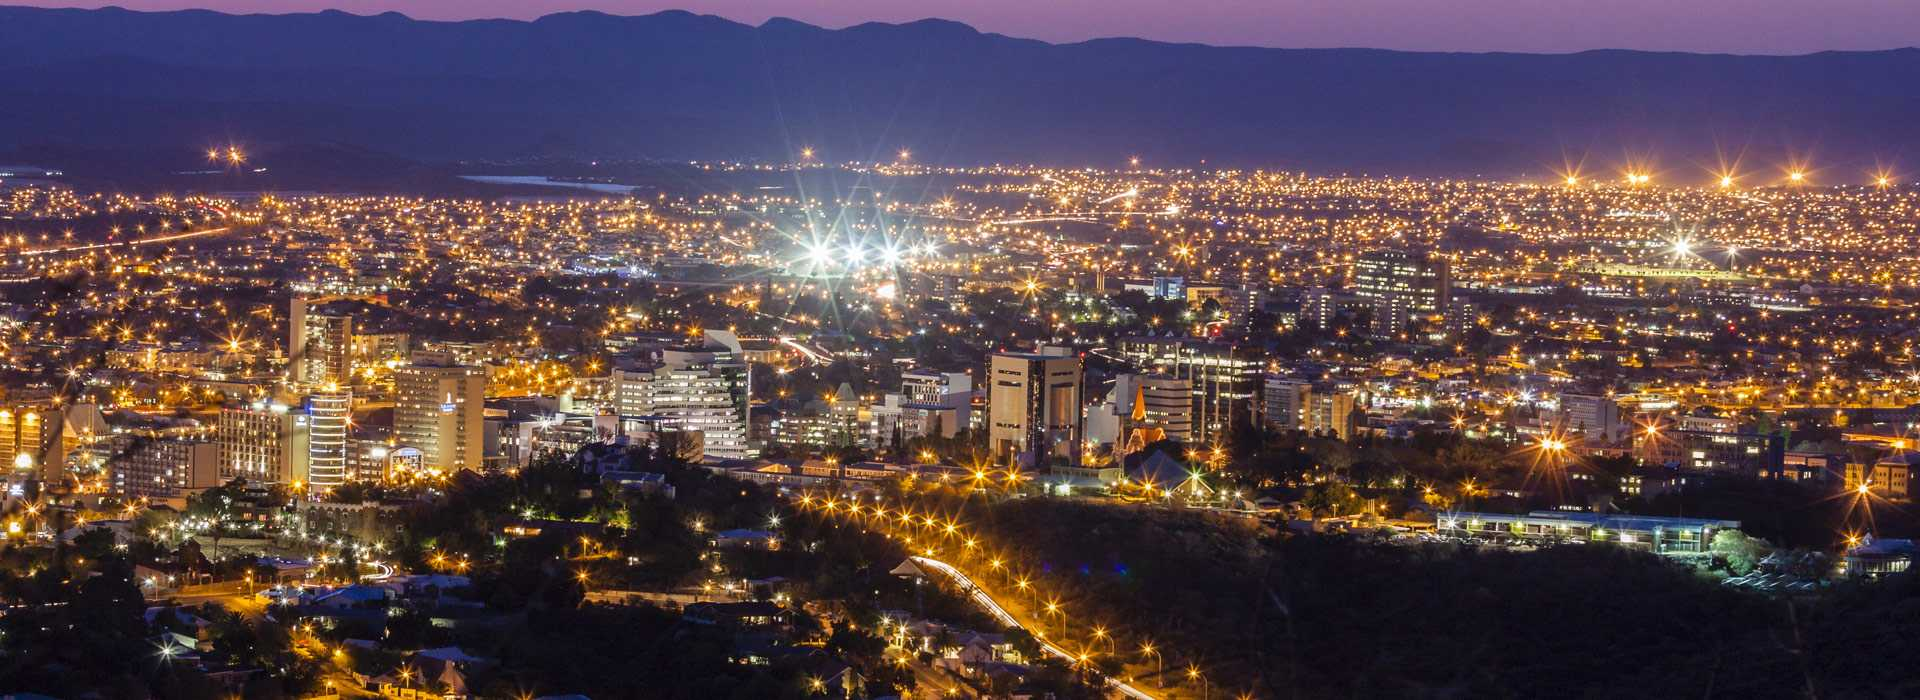 Windhoek City Centre At Night